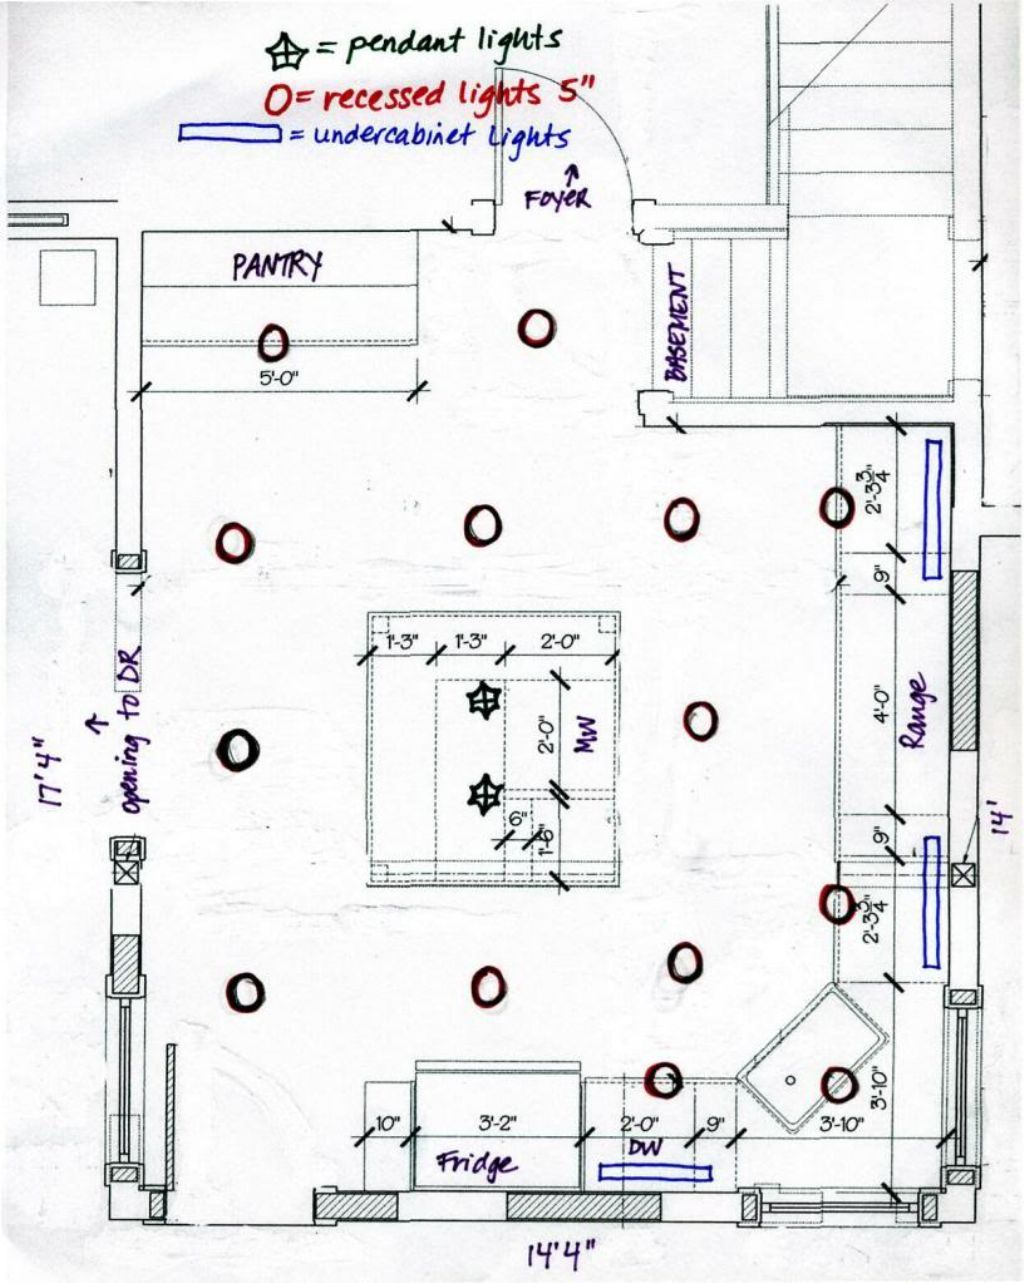 small resolution of recessed lights in kitchenlightsdiagramjpg wiring diagram schematic recessed lighting layout diagram lighting info recessed lighting recessed